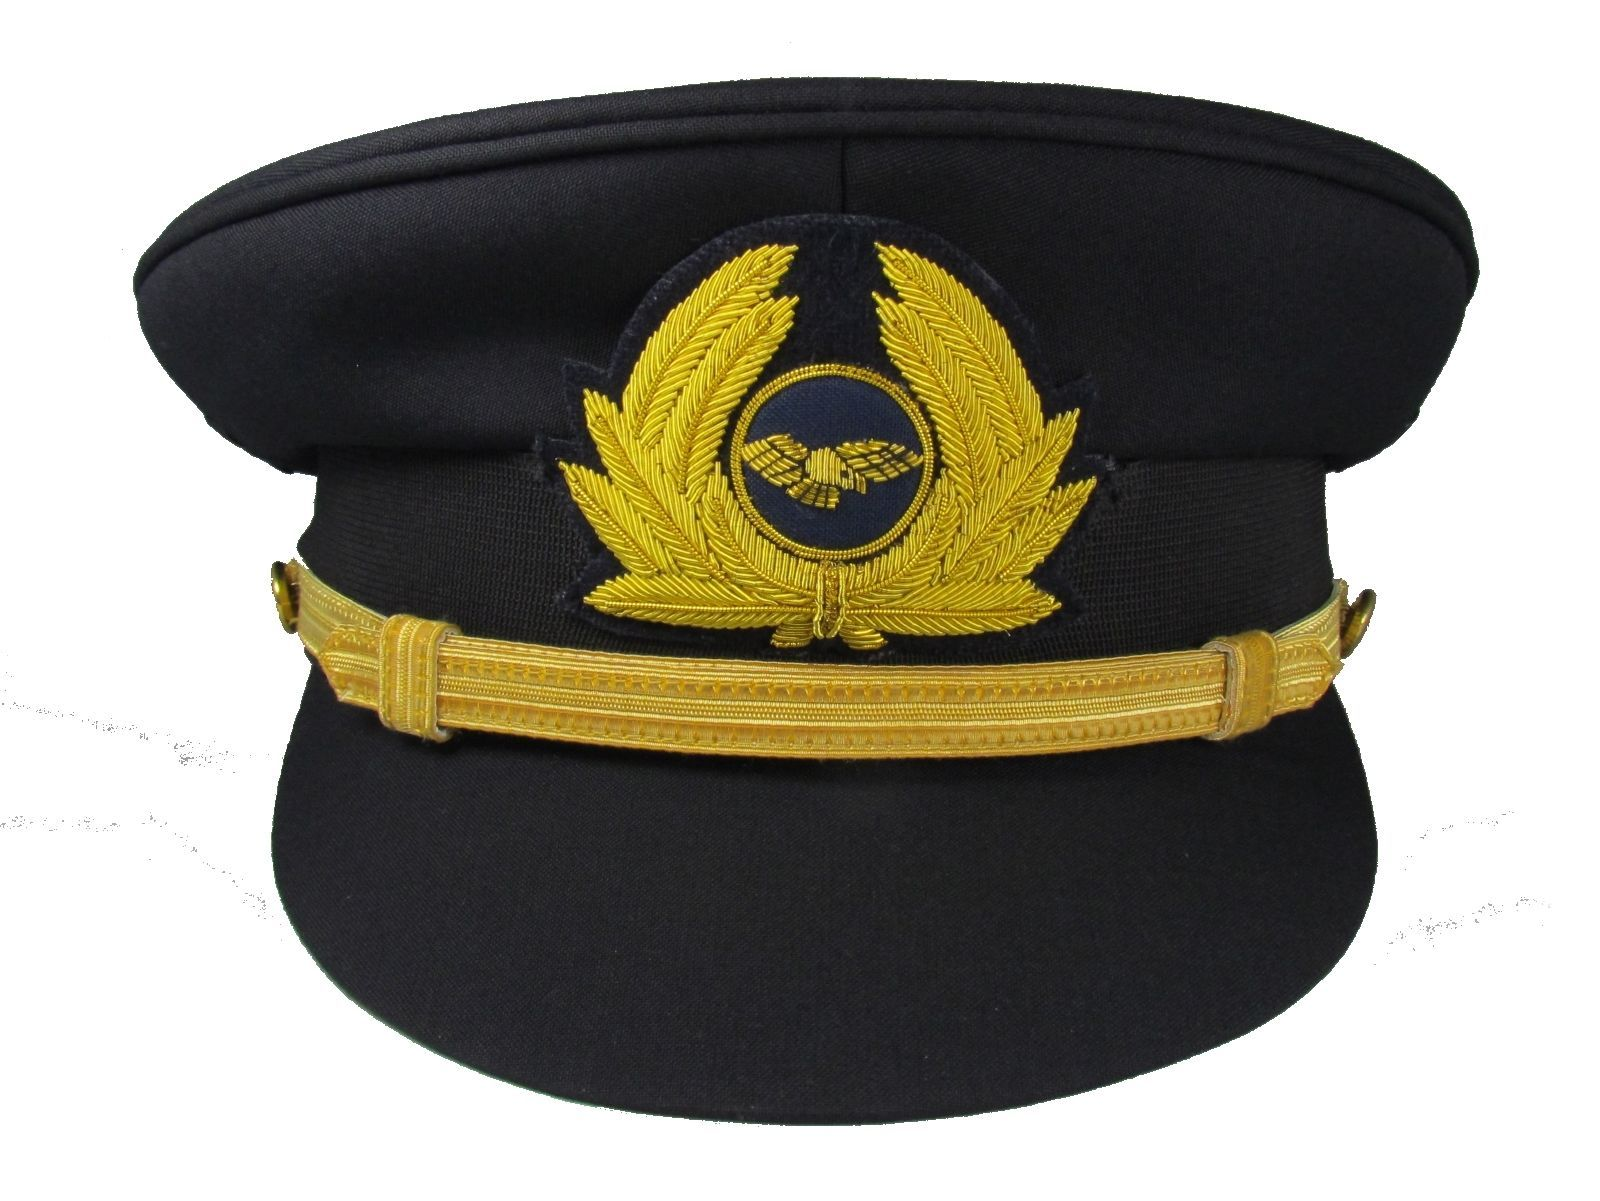 Pilot Cap with Generic Cap Badge Navy Blue Airline Cap R1744 47bb32ae76f